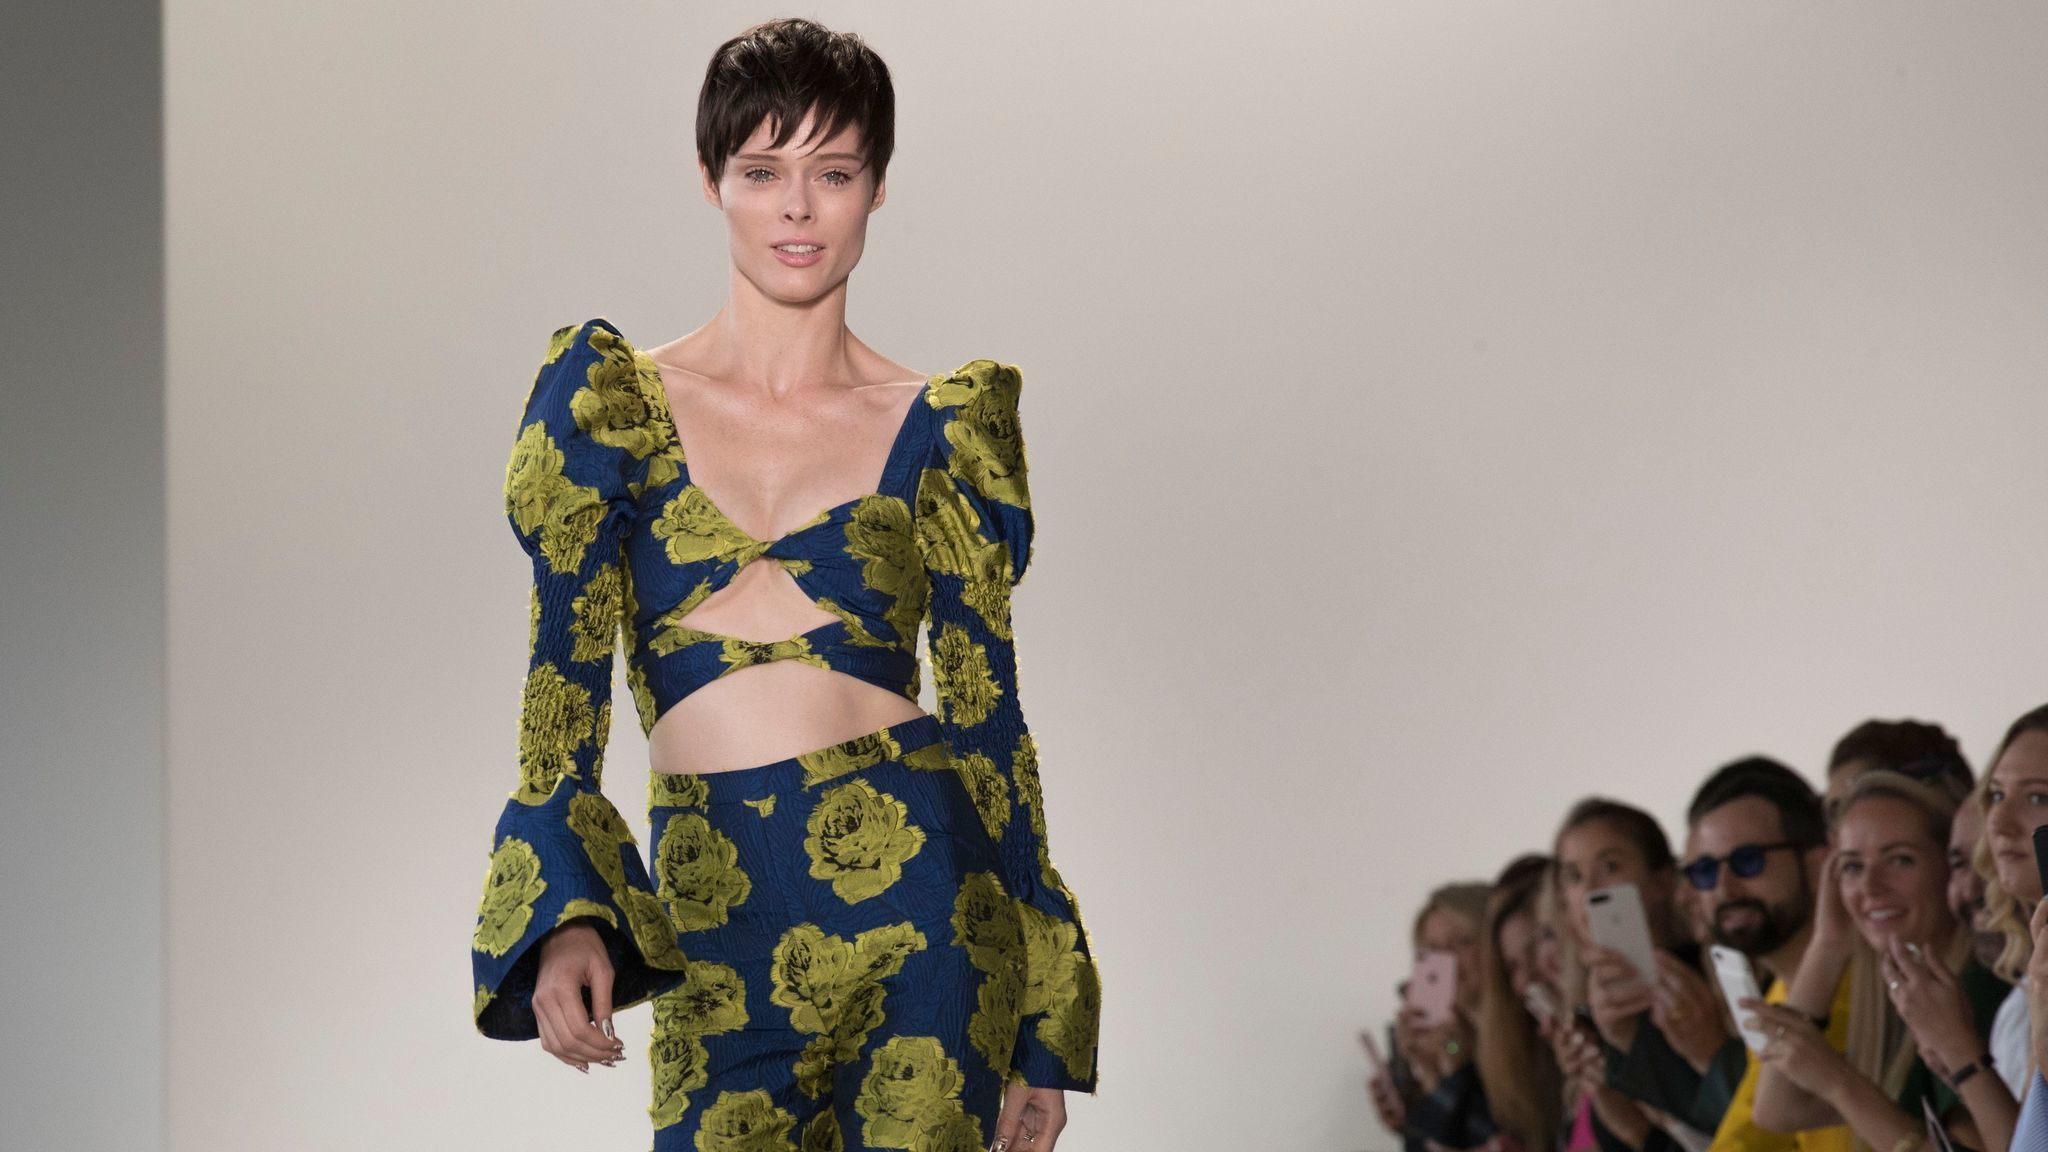 72cc94e0a1e Christian Siriano shows new growth with stunning spring collection at New  York Fashion Week